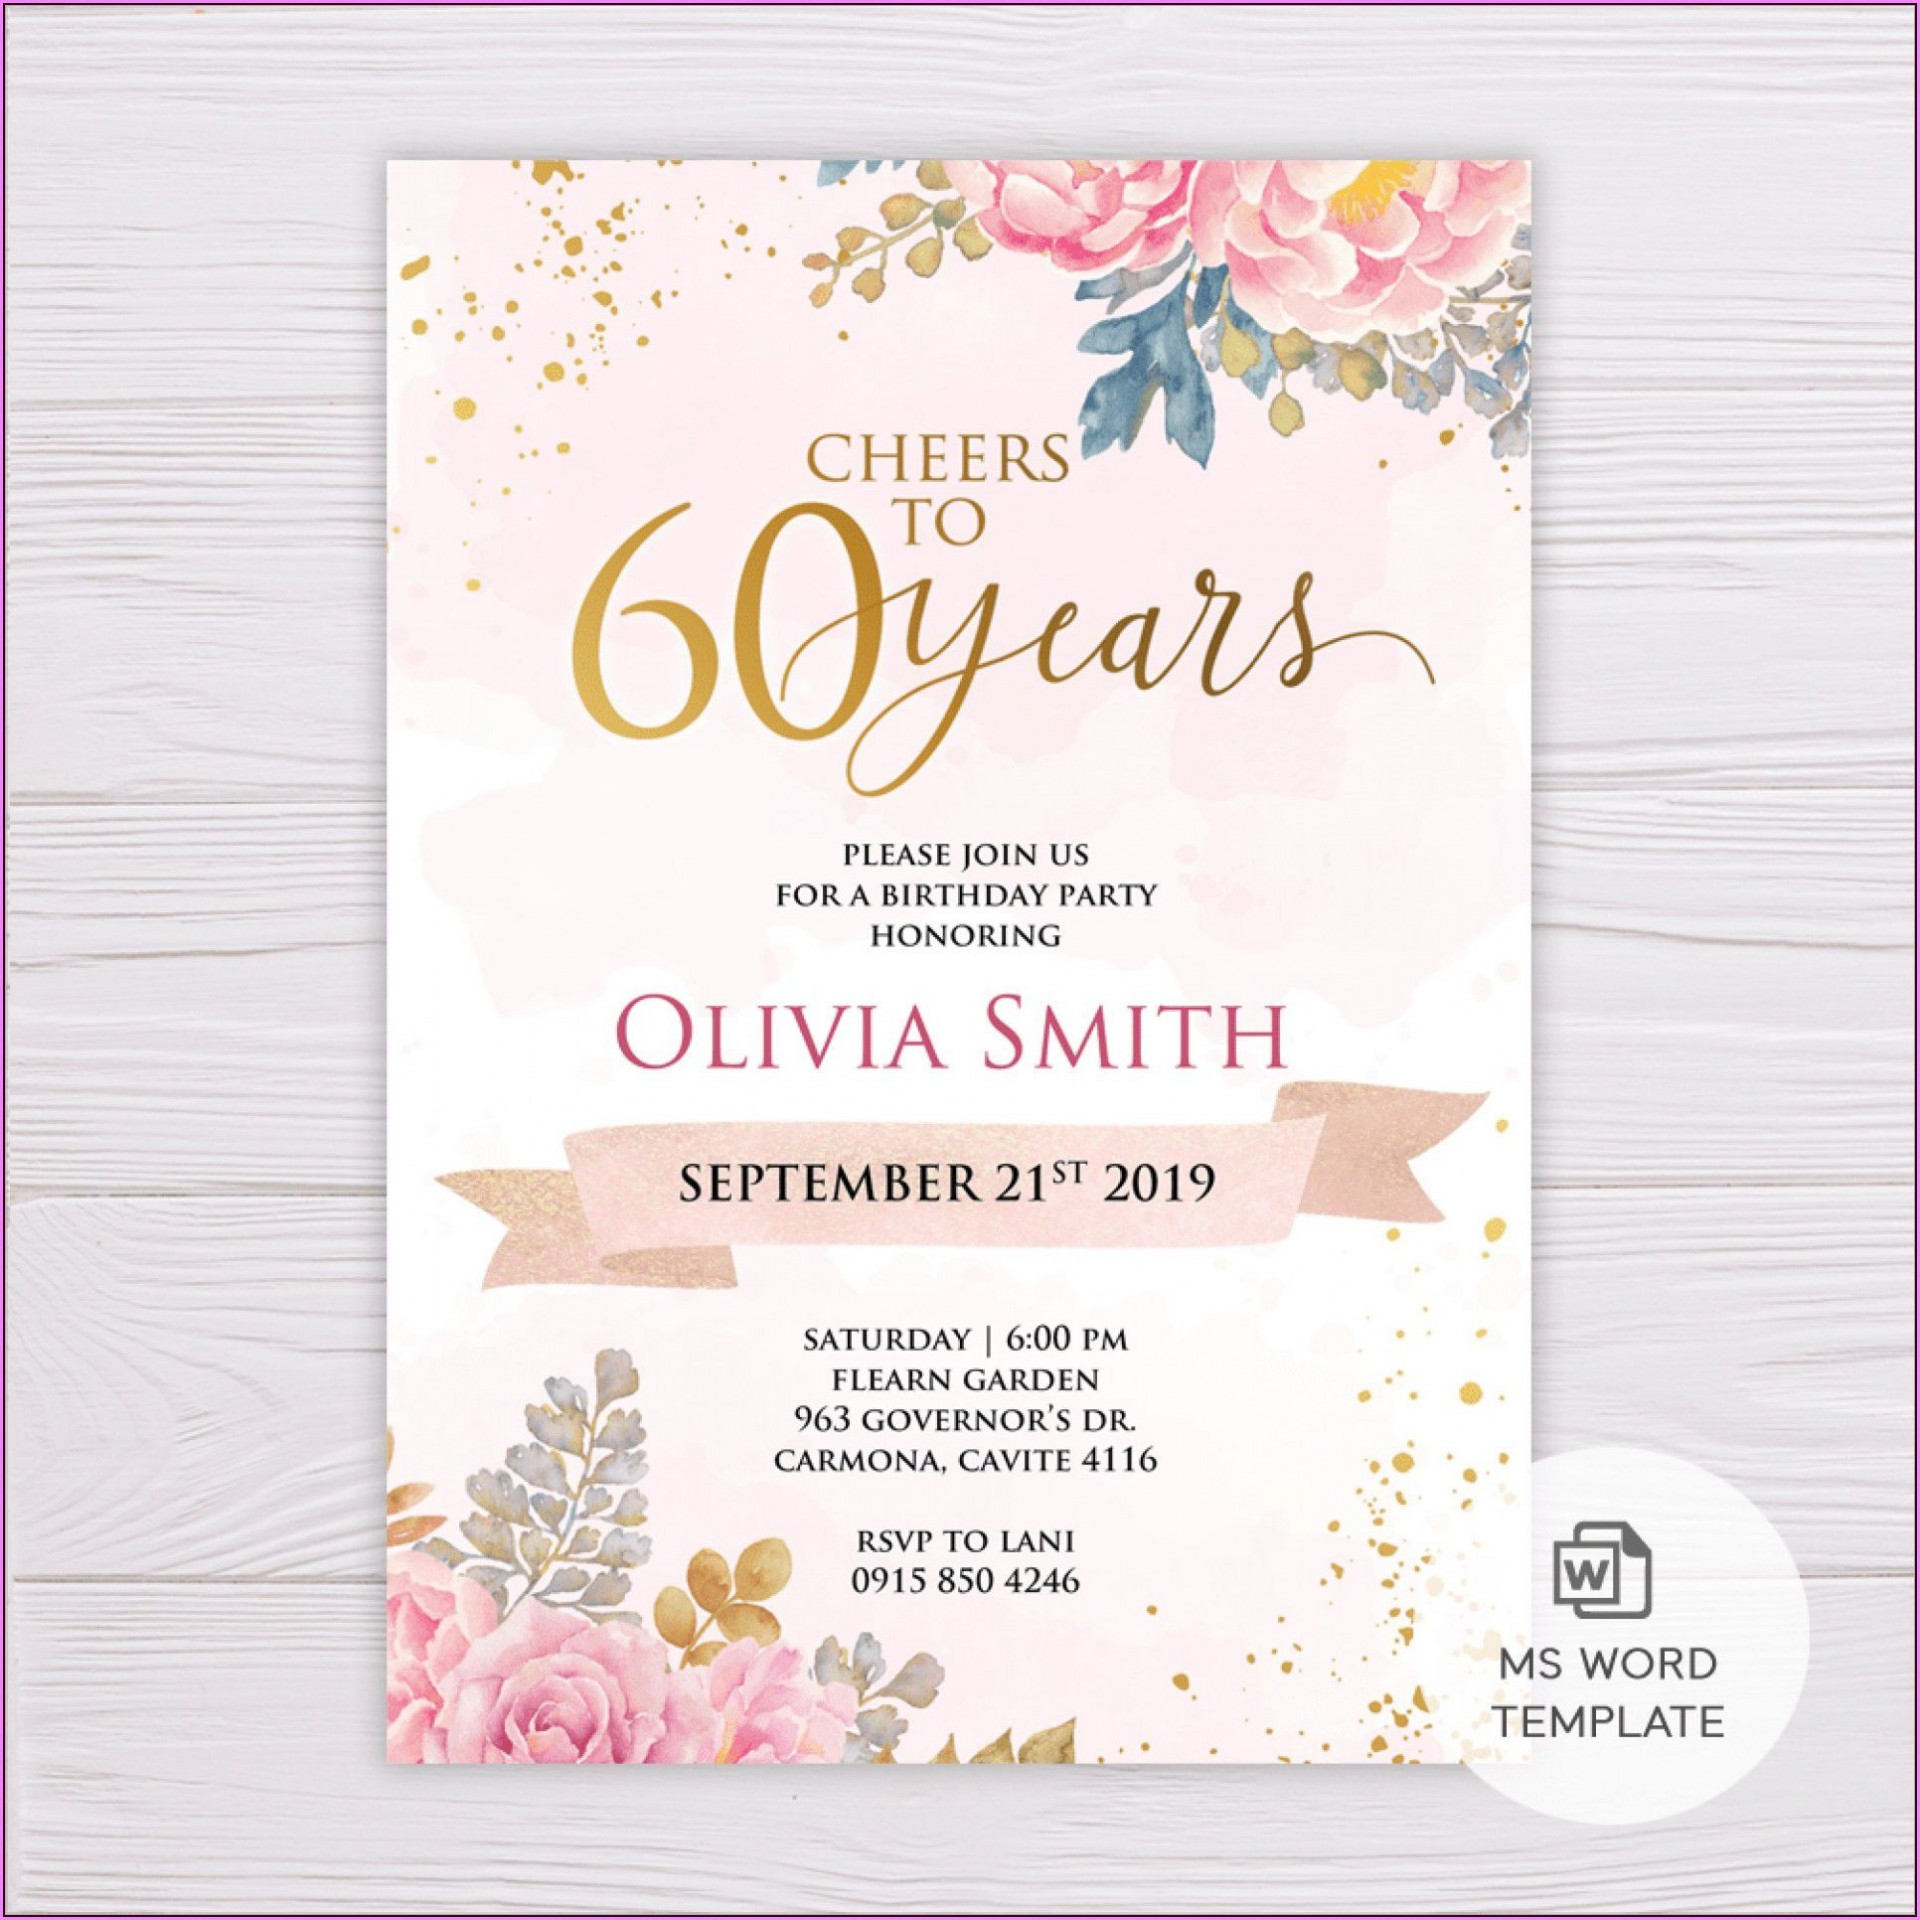 009 Dreaded 60th Birthday Invitation Template High Def  Card Free Download1920